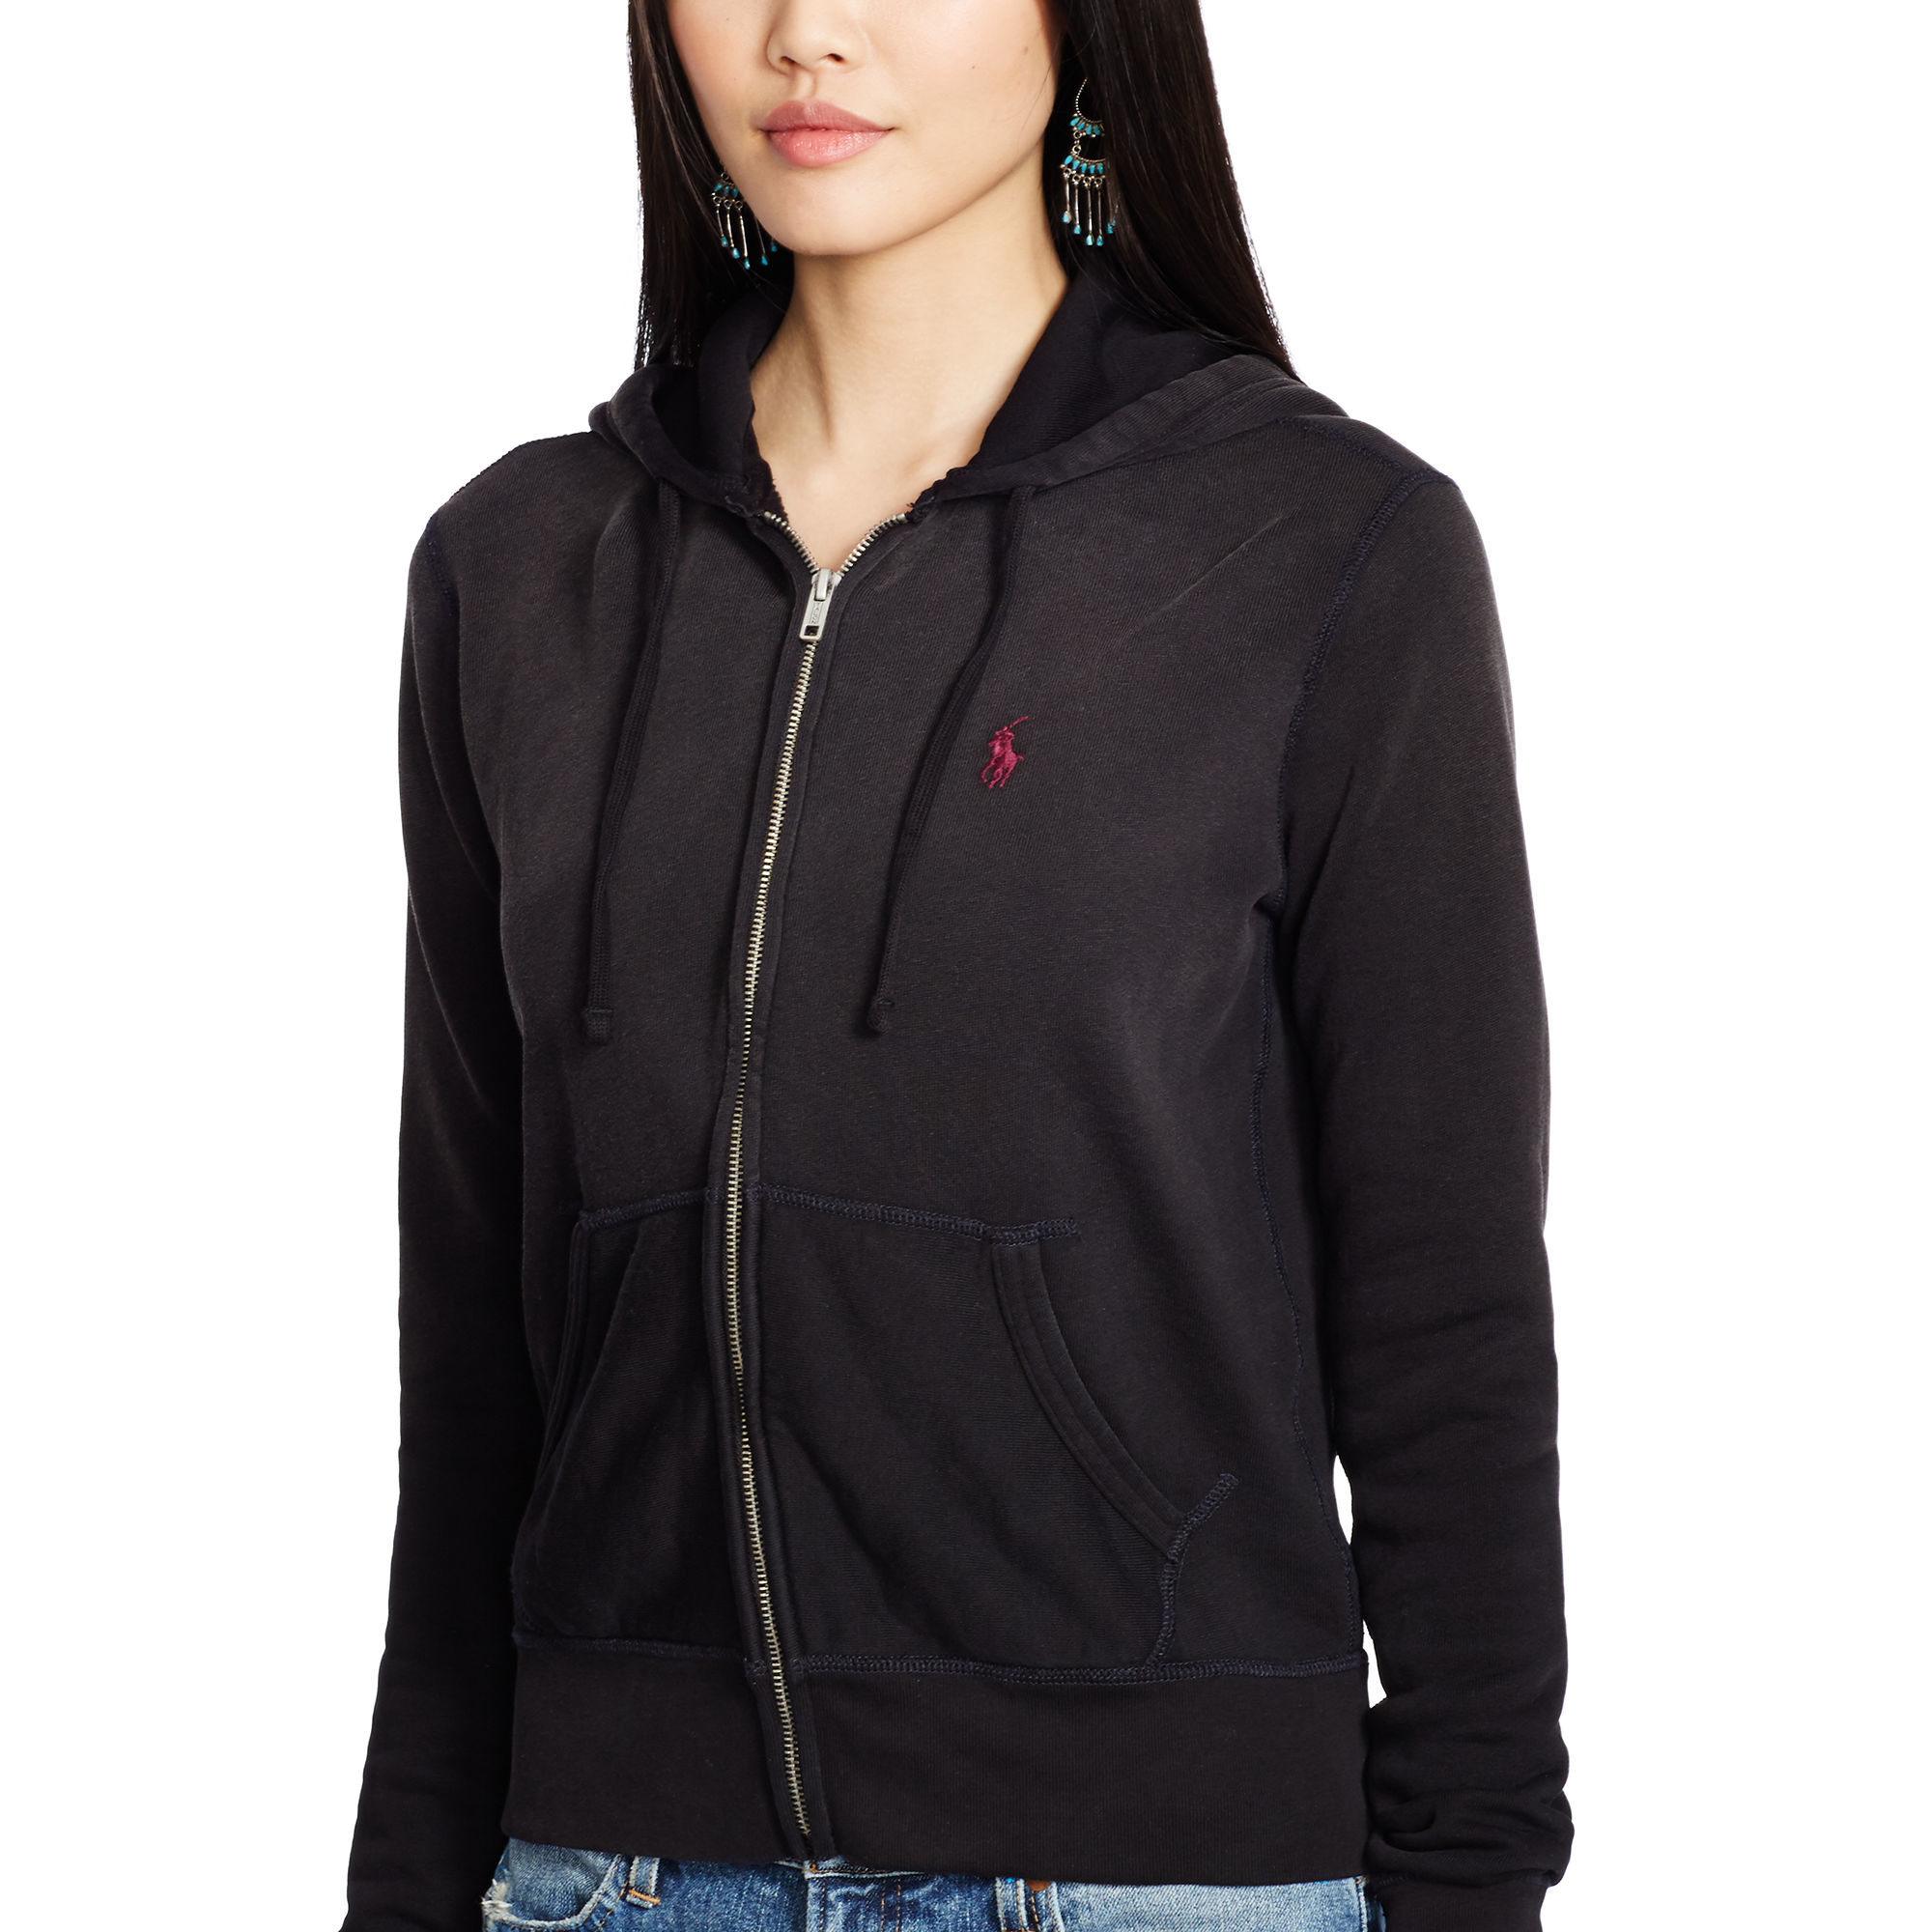 polo ralph lauren pony full zip hoodie in black lyst. Black Bedroom Furniture Sets. Home Design Ideas